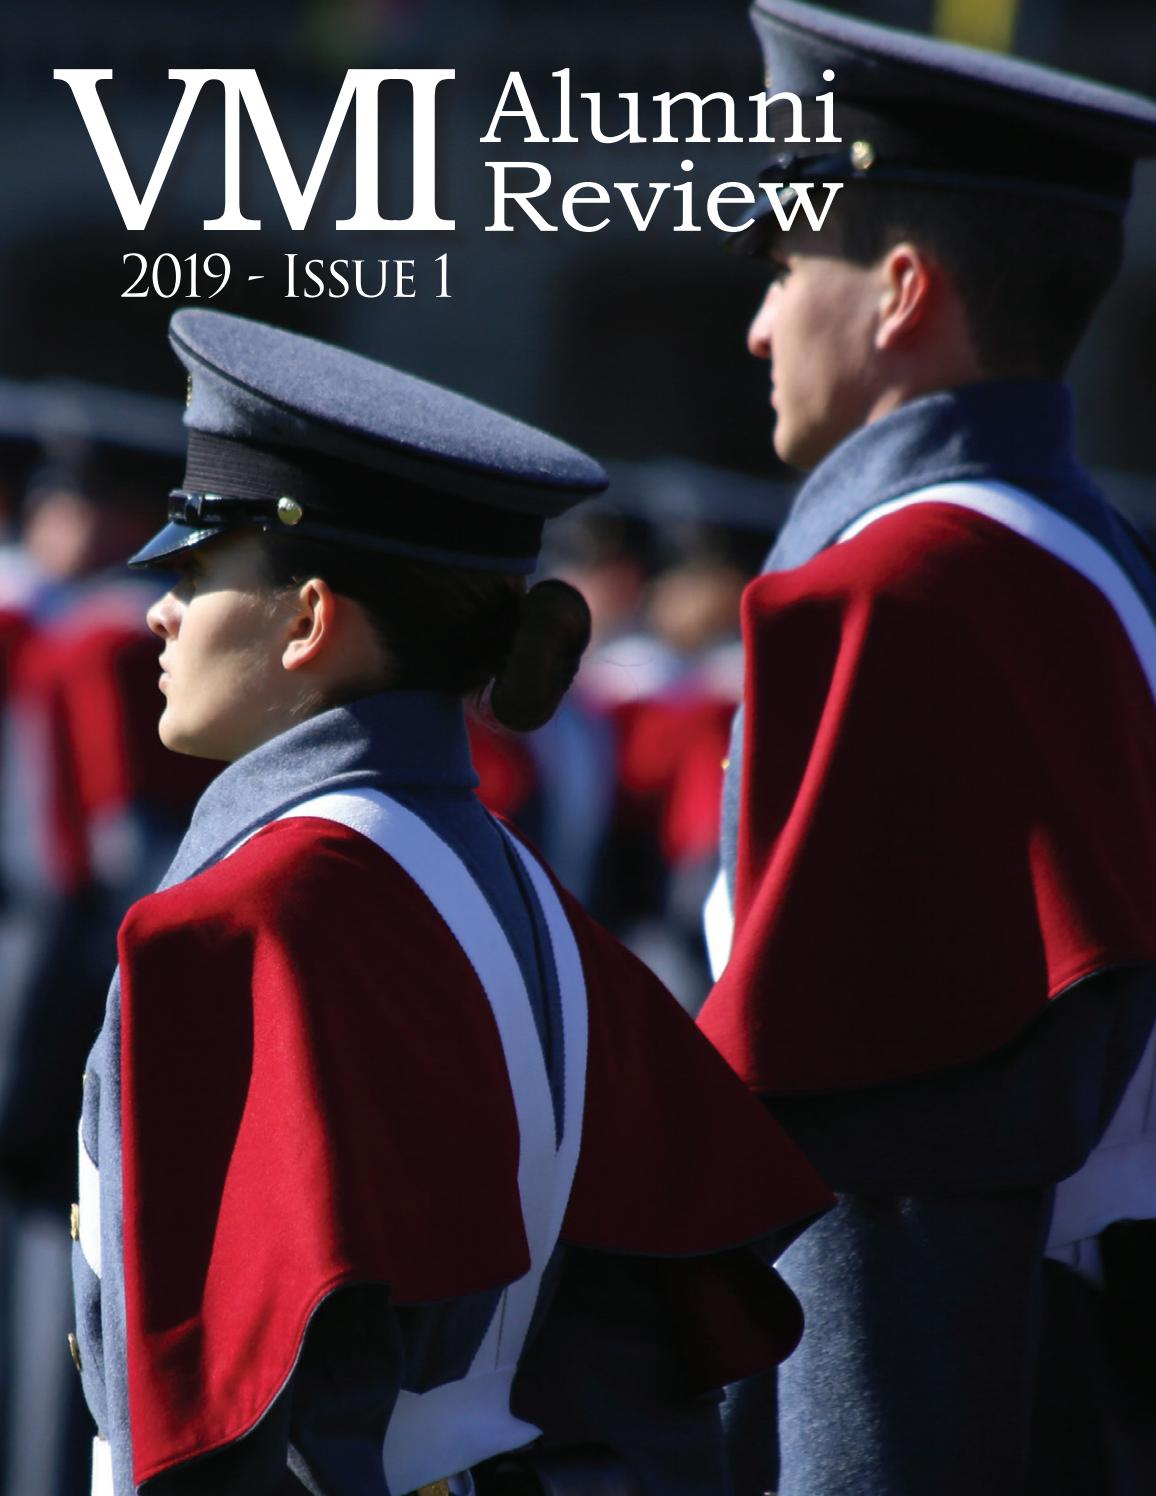 2019 Issue 1 Alumni Review By Vmi Alumni Agencies Issuu